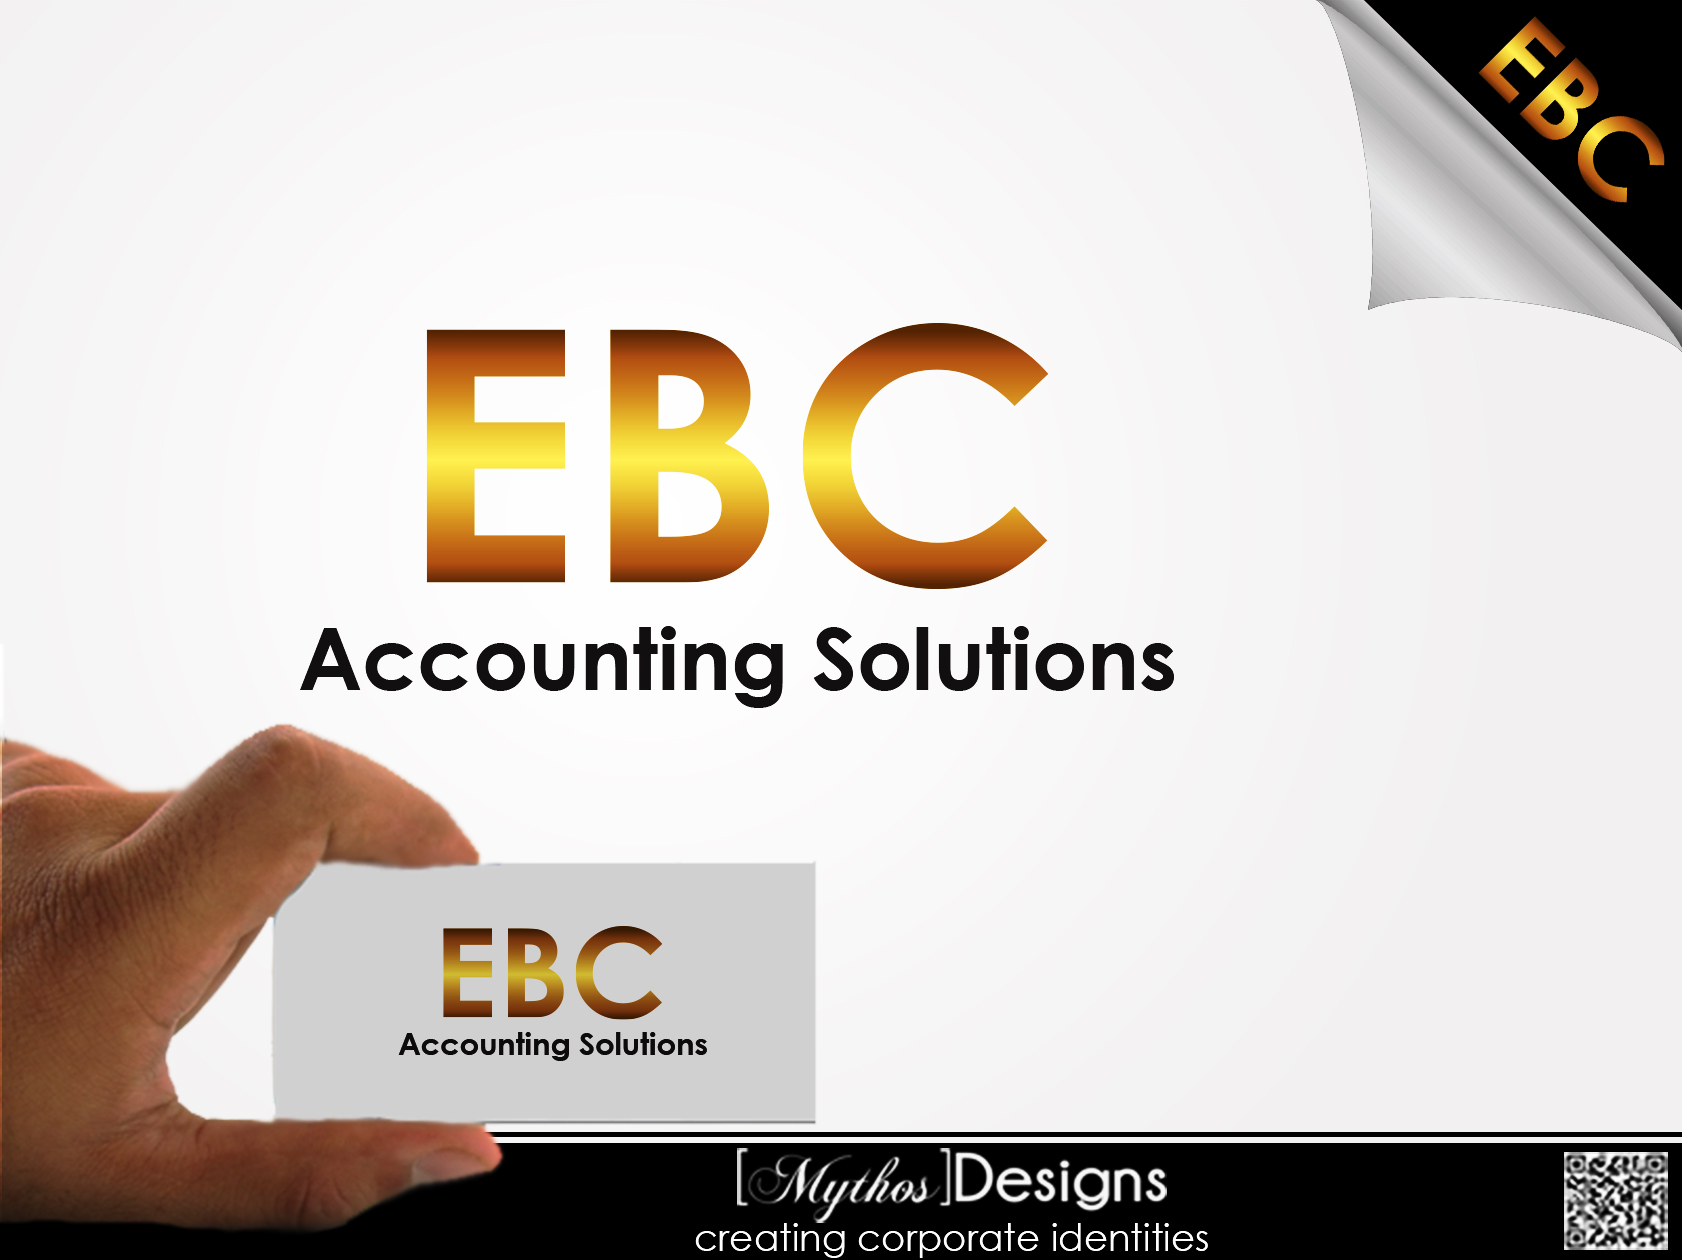 Logo Design by Mythos Designs - Entry No. 220 in the Logo Design Contest New Logo Design for EBC Accounting Solutions.